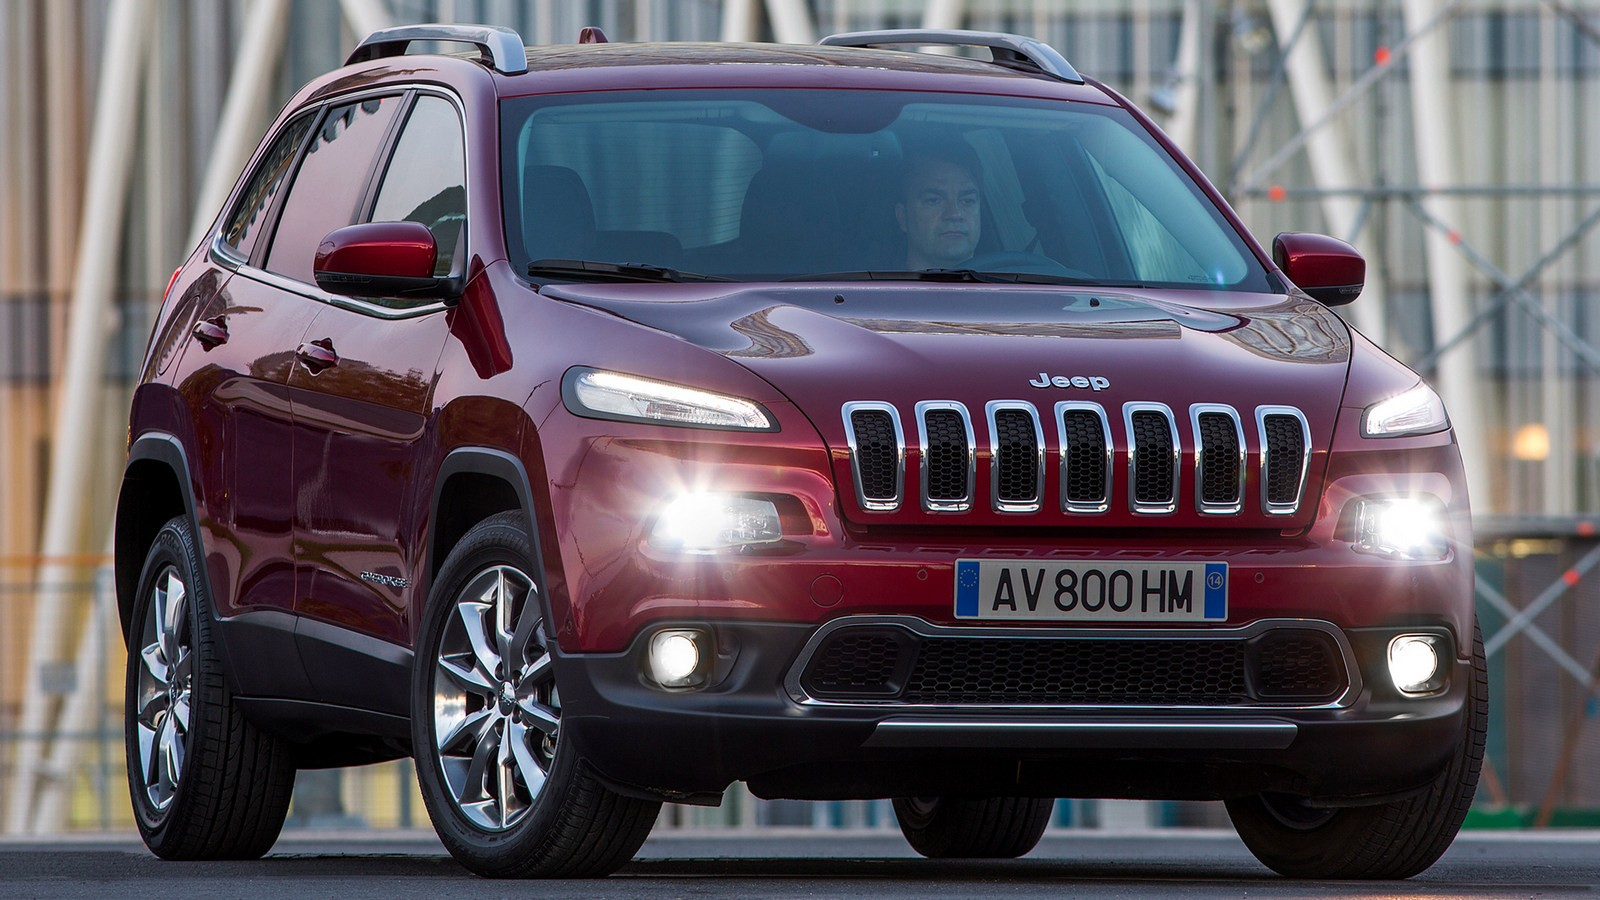 jeep_cherokee_limited_eu-spec_16